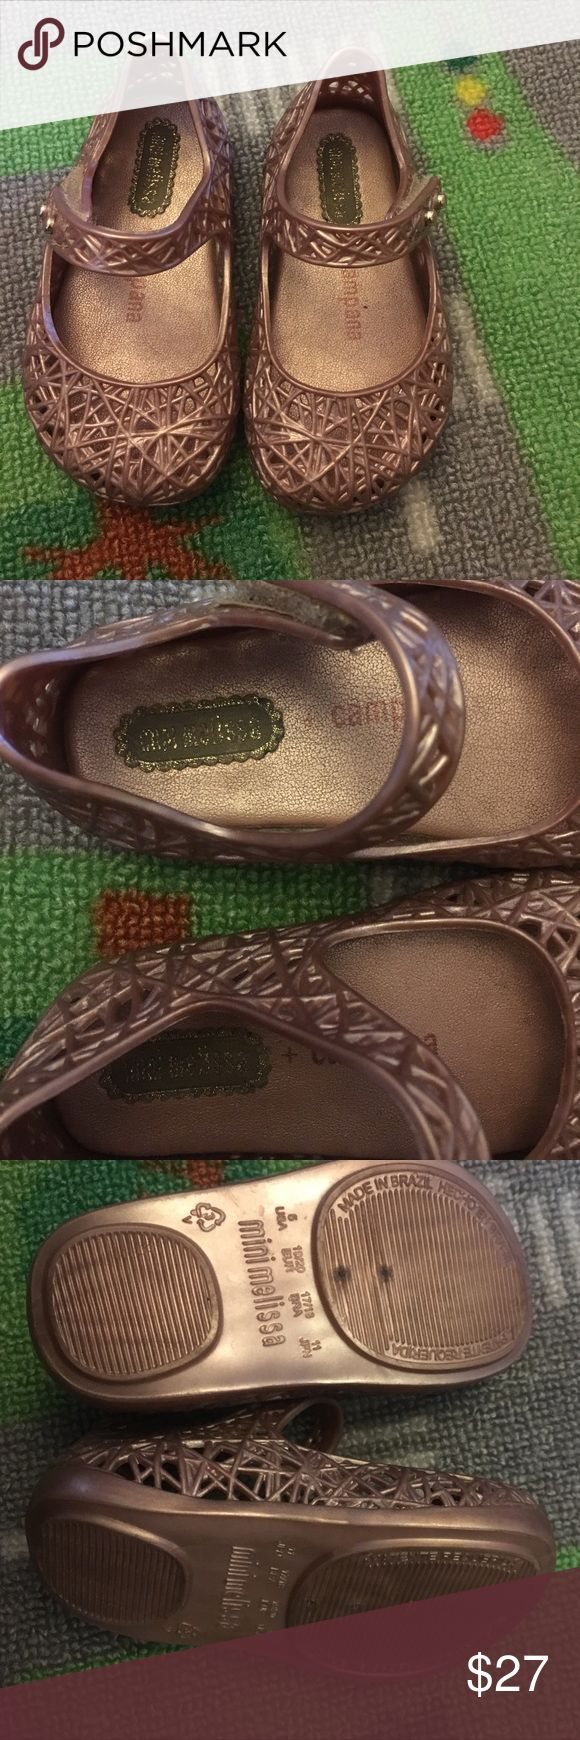 Mine Melissa sandals Purchased these rose gold mini Melissa Campana's over the summer from Nordstrom. I hate to see these go. My daughter did a growth spurt. My loss is your gain! (Stock photo is just to show prices paid) Mini Melissa Shoes Sandals & Flip Flops